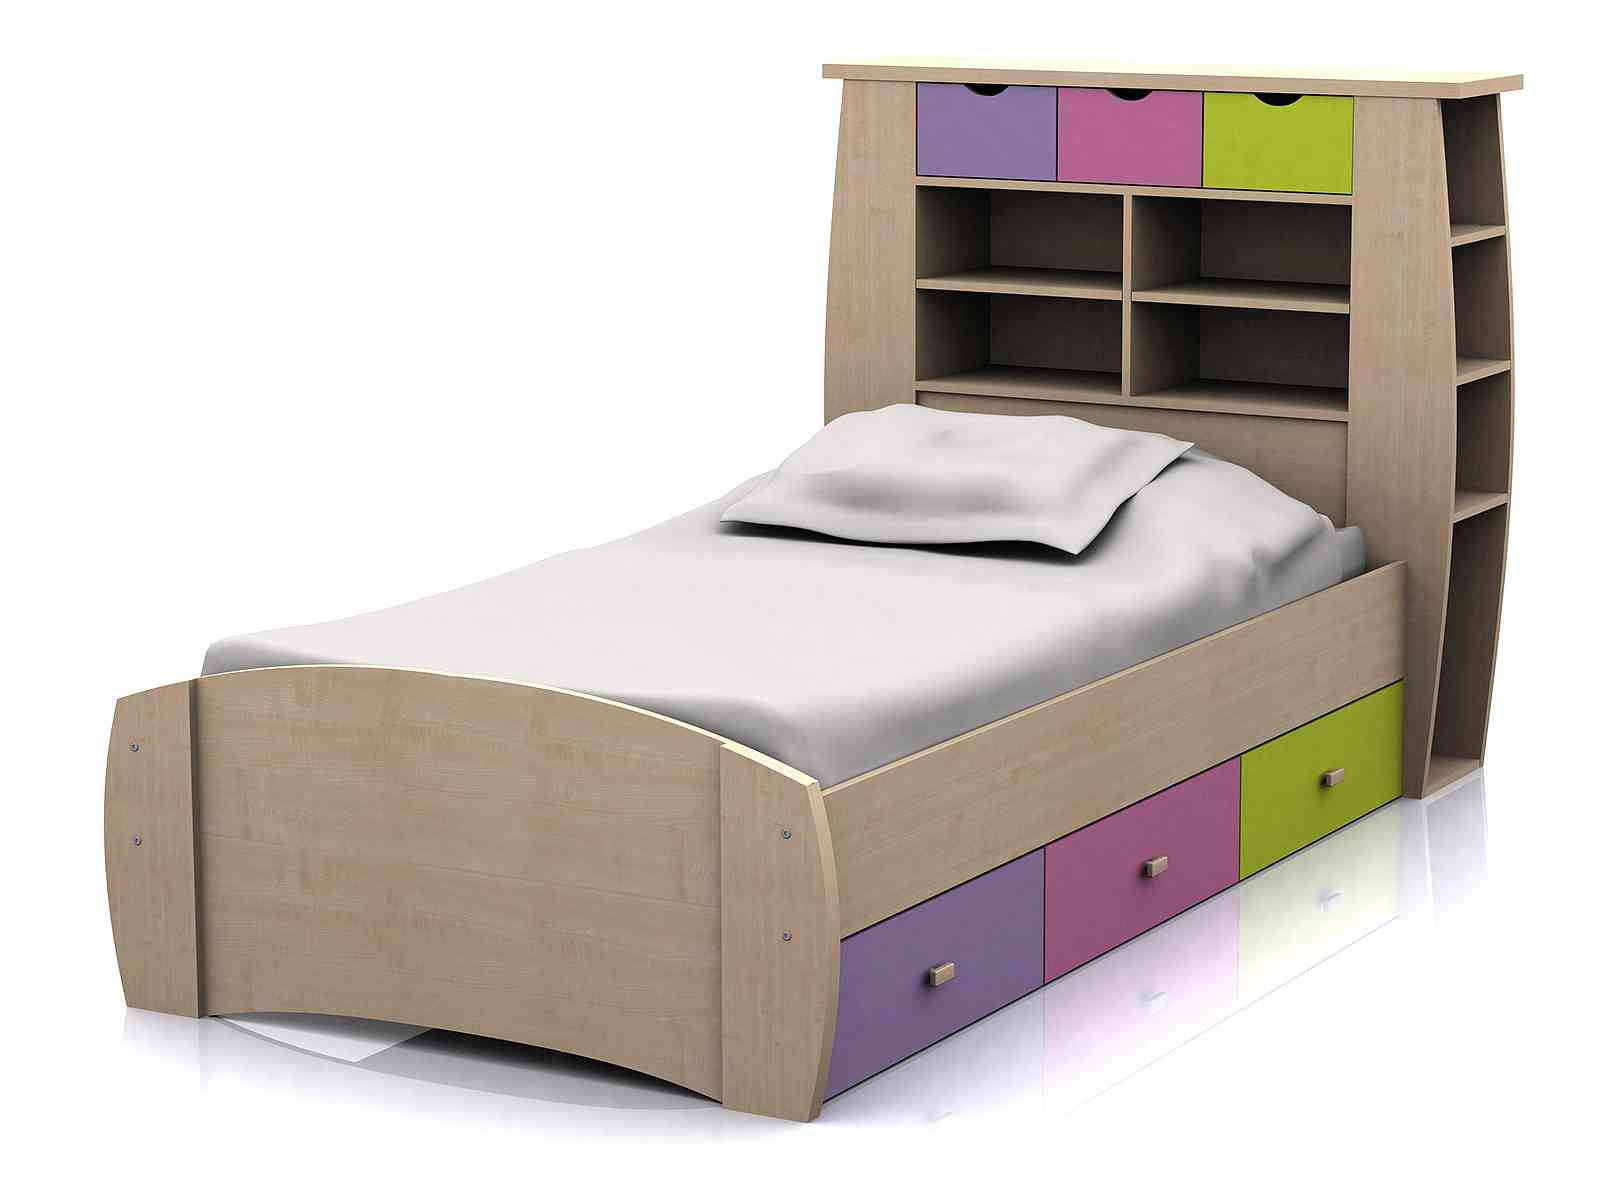 Gfw the furniture warehouse sydney 3 39 storage bed for Beds sydney